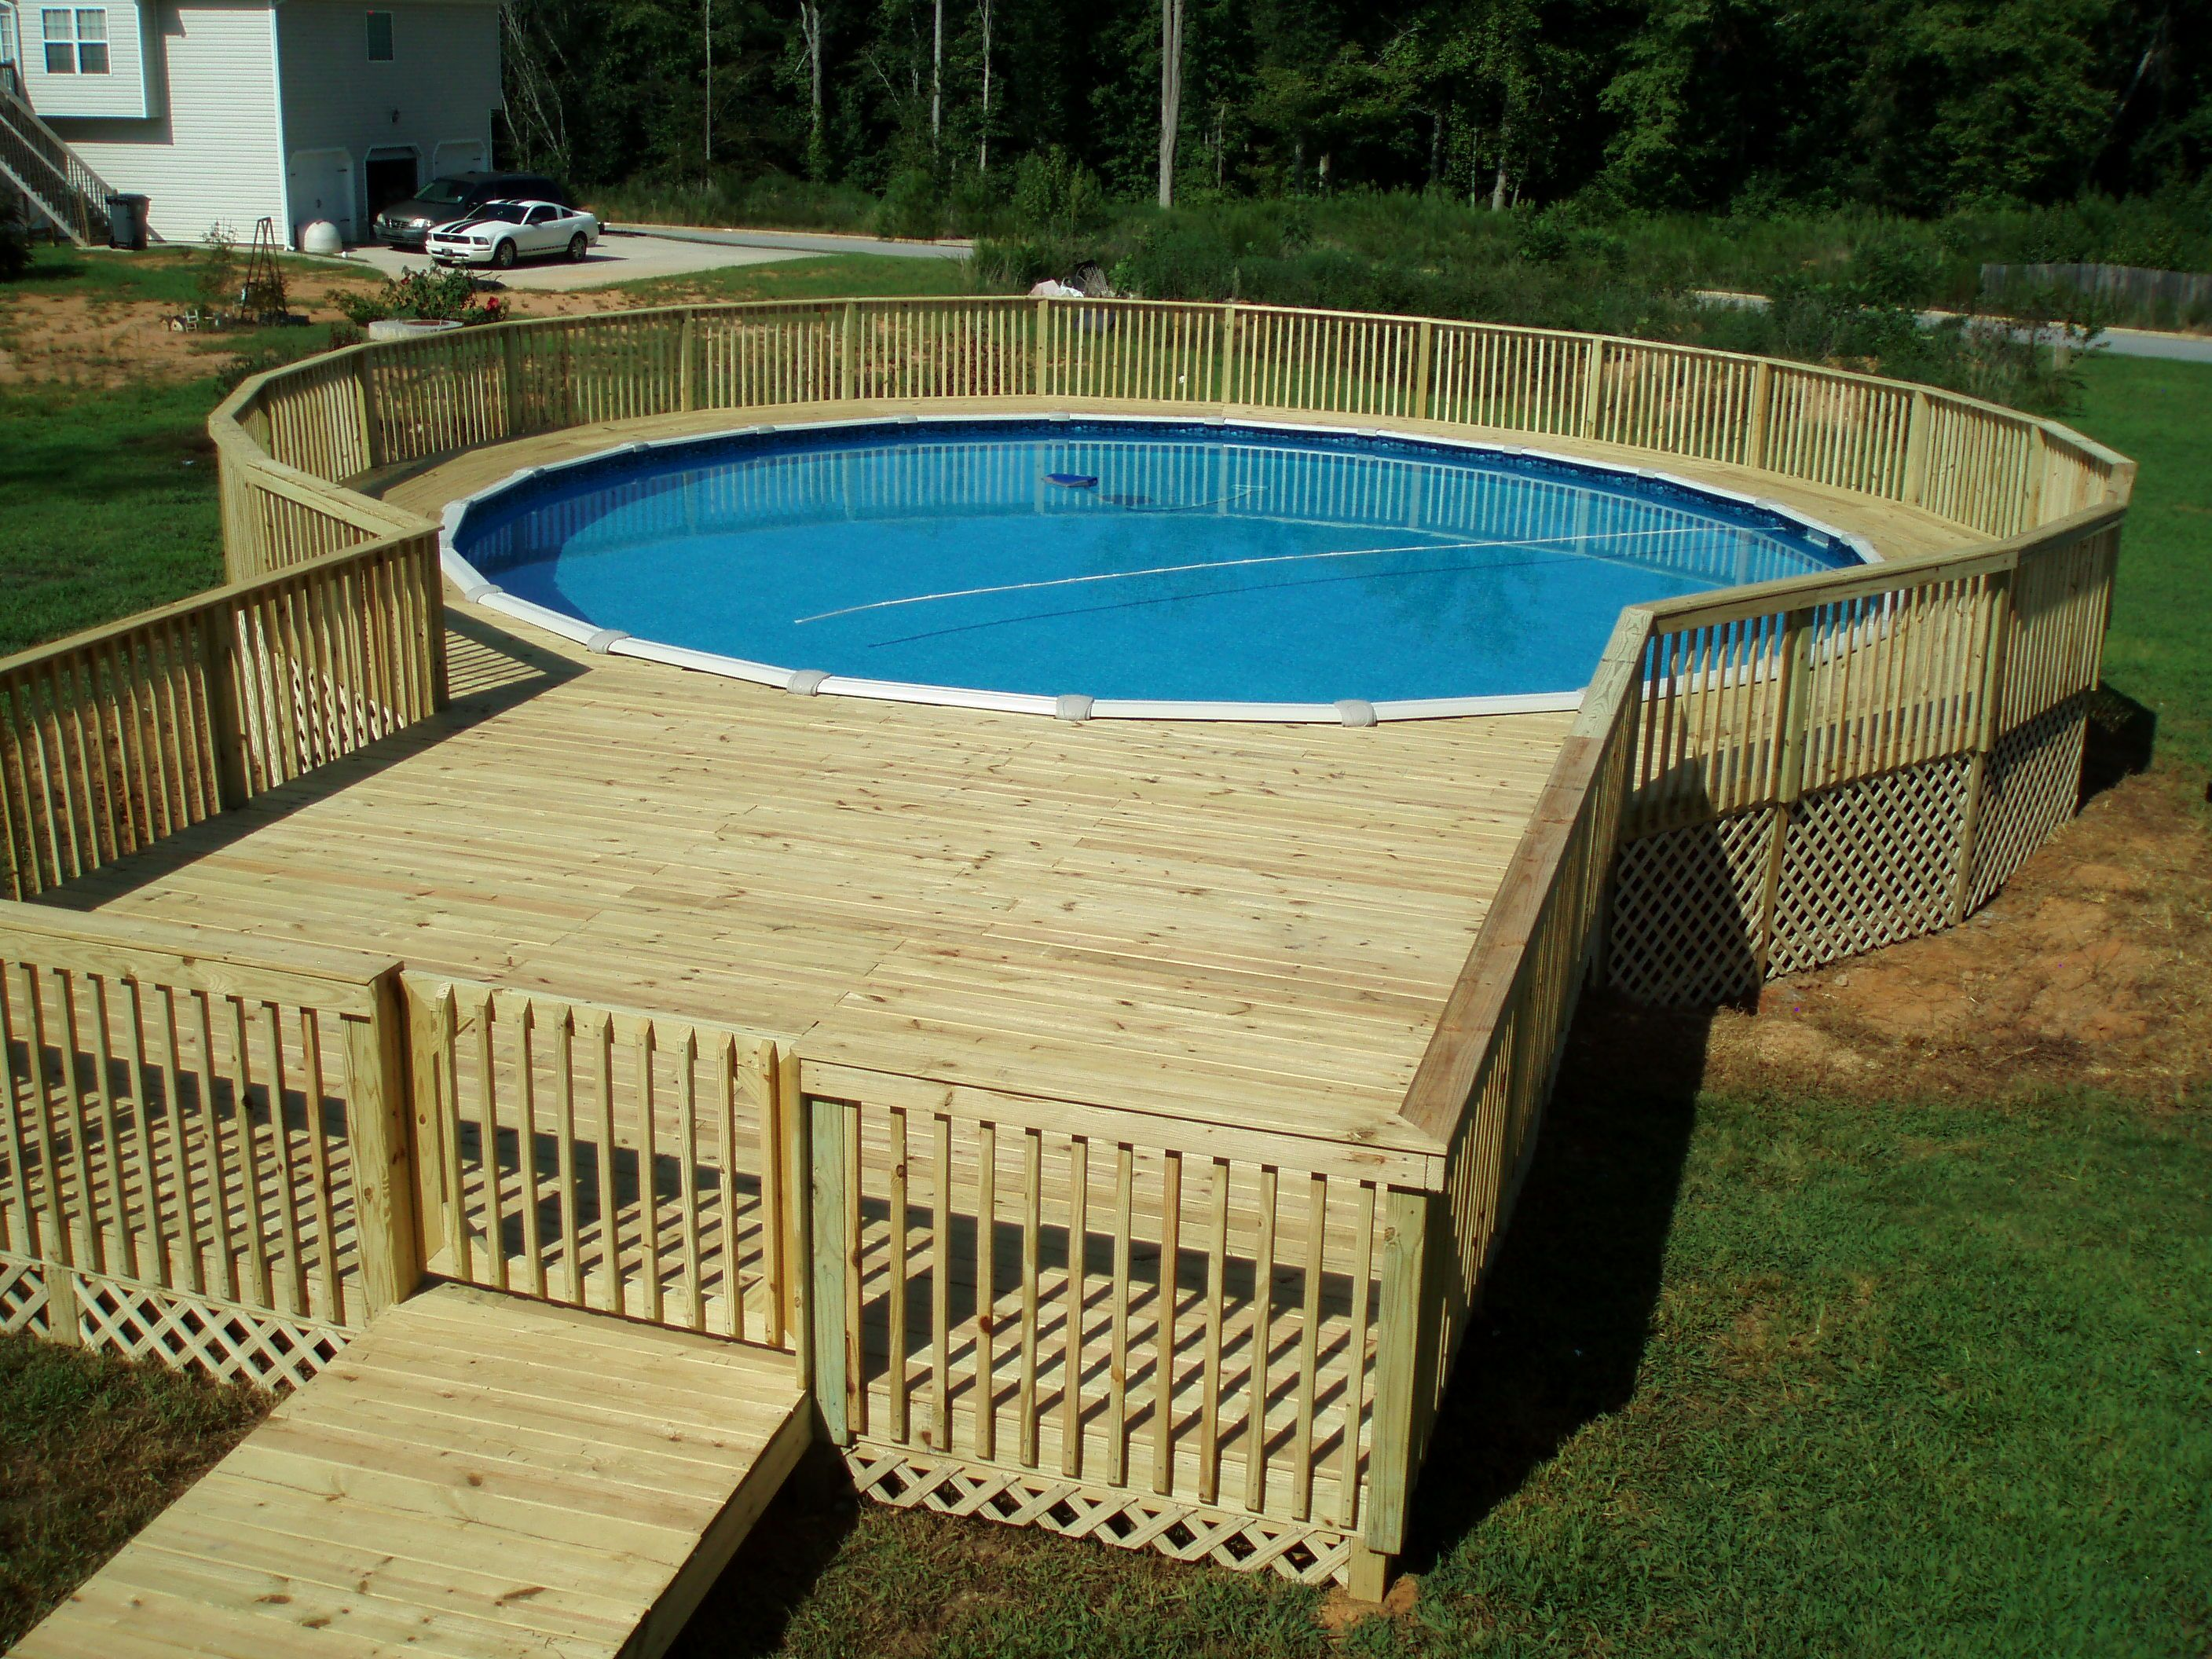 Deck Design Ideas For Above Ground Pools find this pin and more on a pool design simple above ground pool deck plans deck ideas Above Ground Pools Decks Idea Bing Images Defiantly In The Future